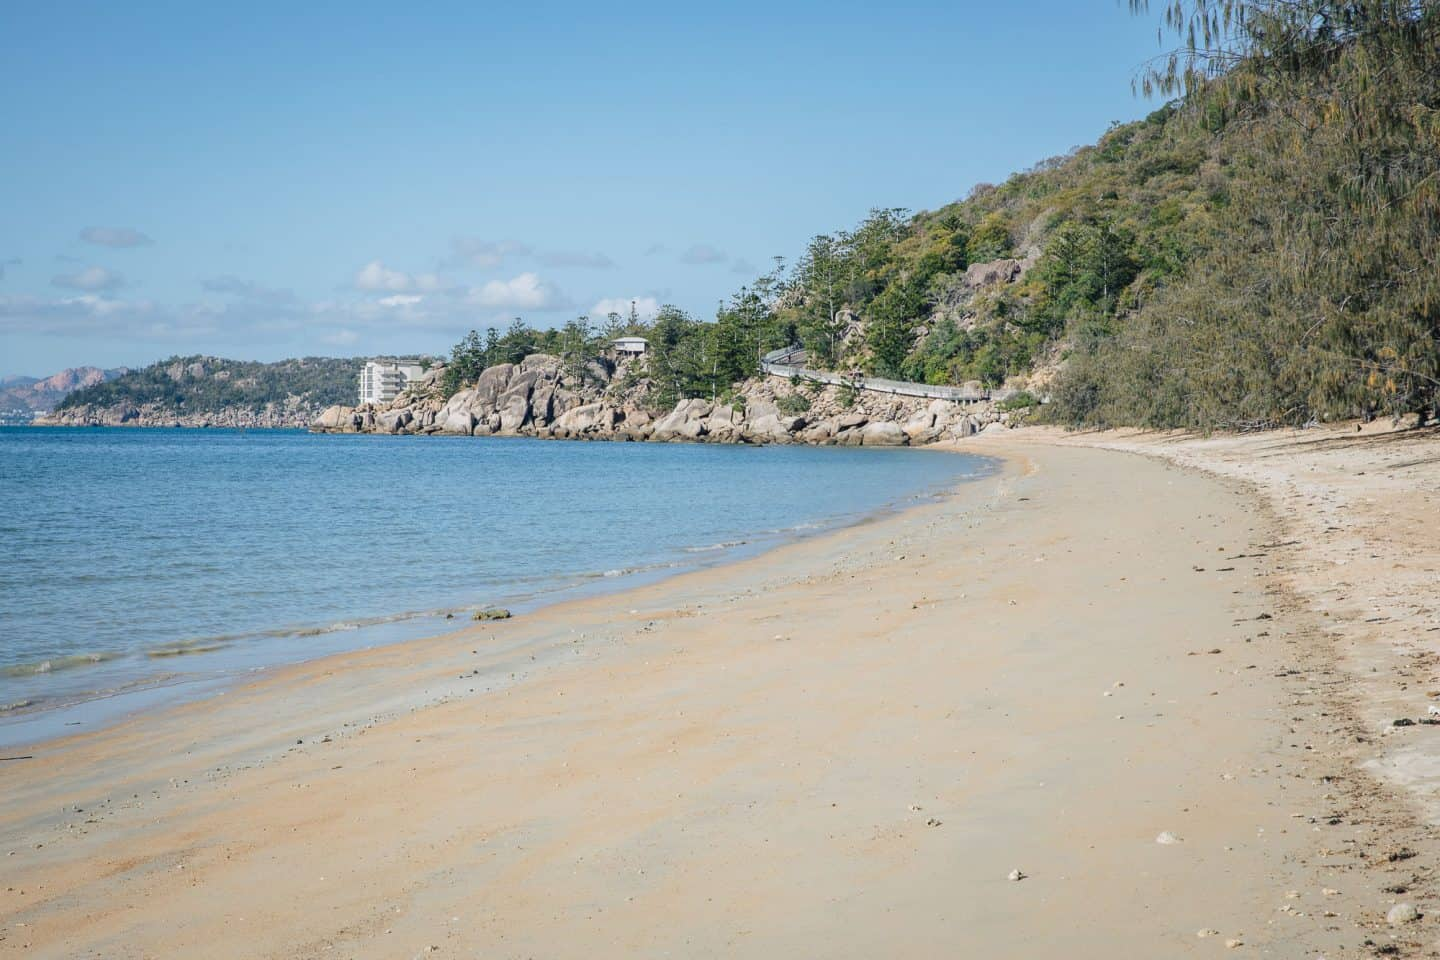 magnetic island tour, magnetic island, things to do on magnetic island, things to do in magnetic island, magnetic island australia, magnetic island queensland, geoffrey bay